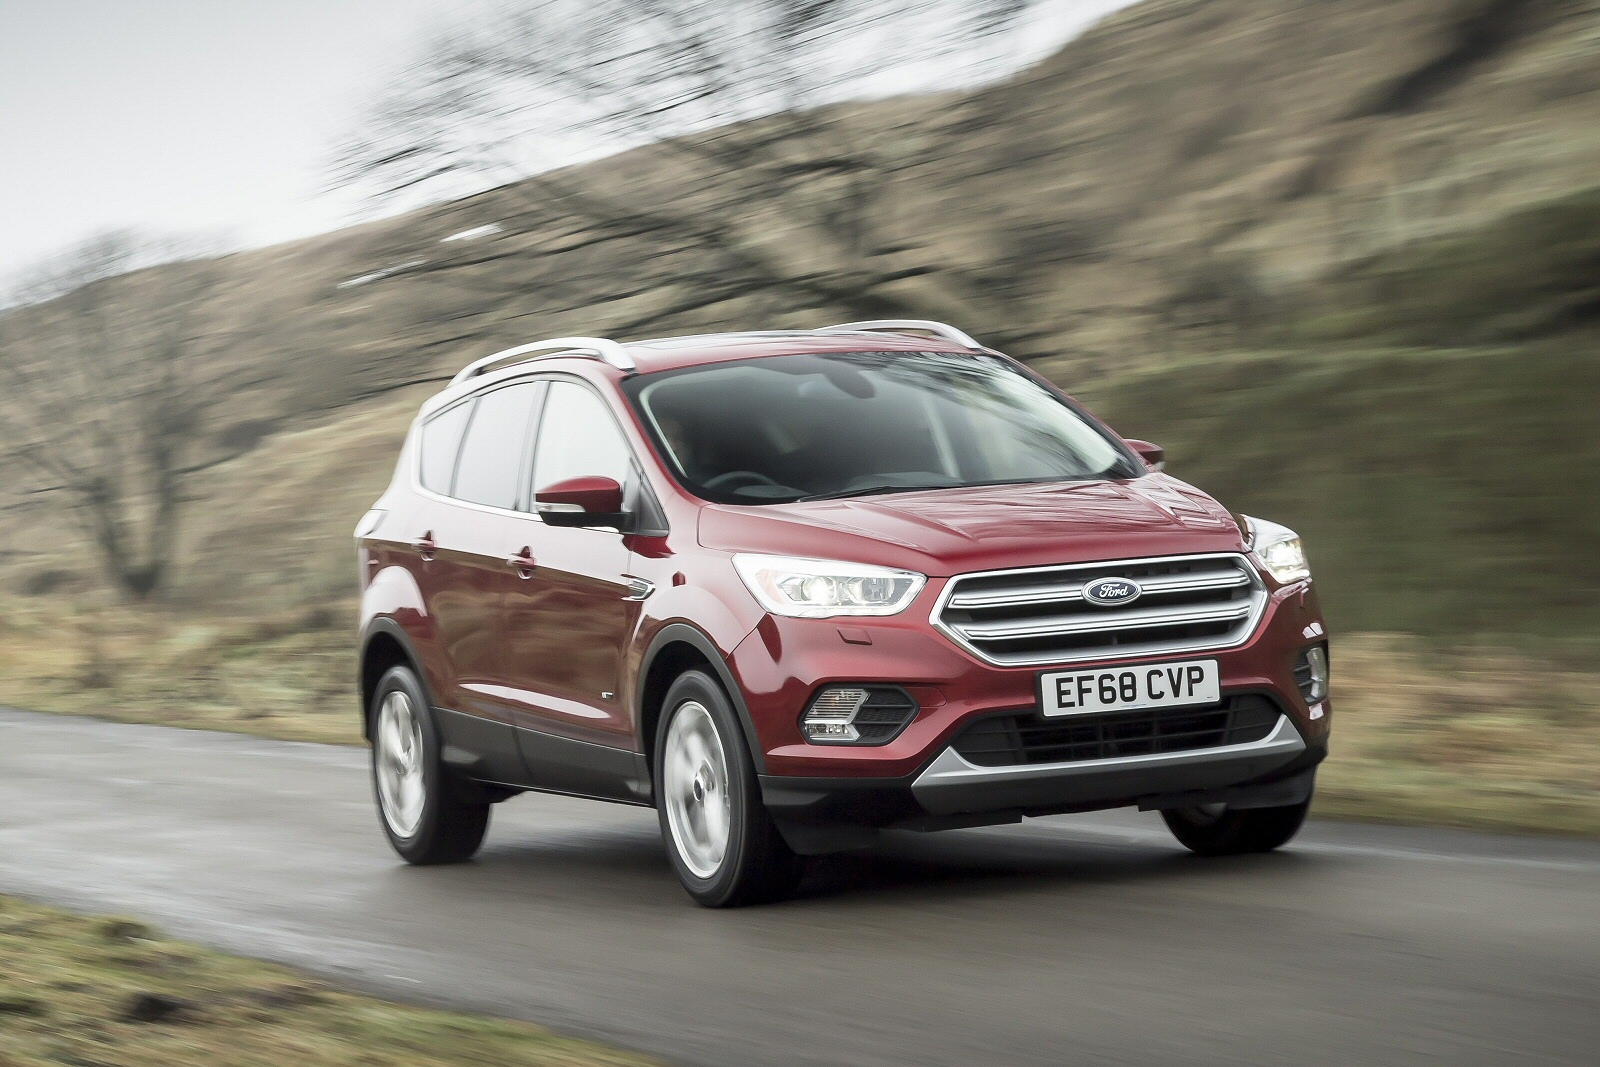 new ford kuga 1 5 ecoboost 120 zetec 5dr 2wd petrol estate for sale bristol street. Black Bedroom Furniture Sets. Home Design Ideas